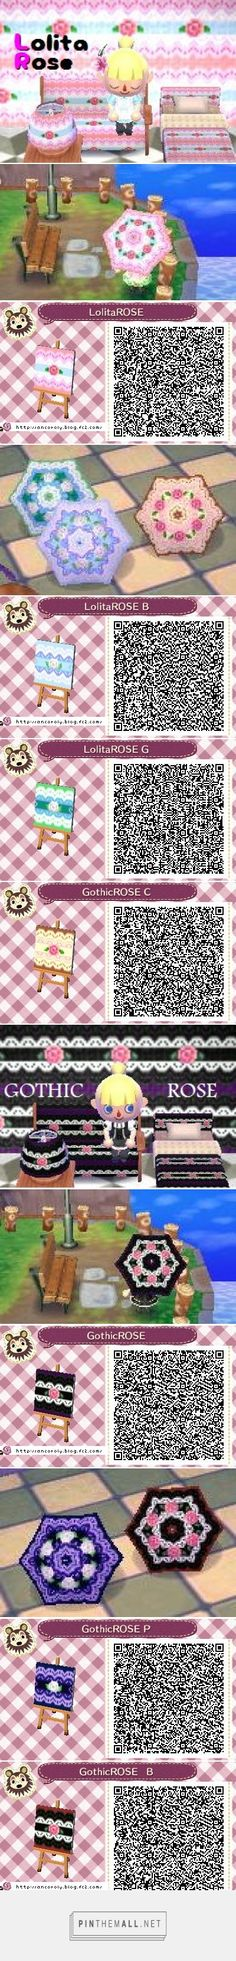 Lolita Rose / Gothic Rose pattern in various colors. Great for furniture and umbrellas